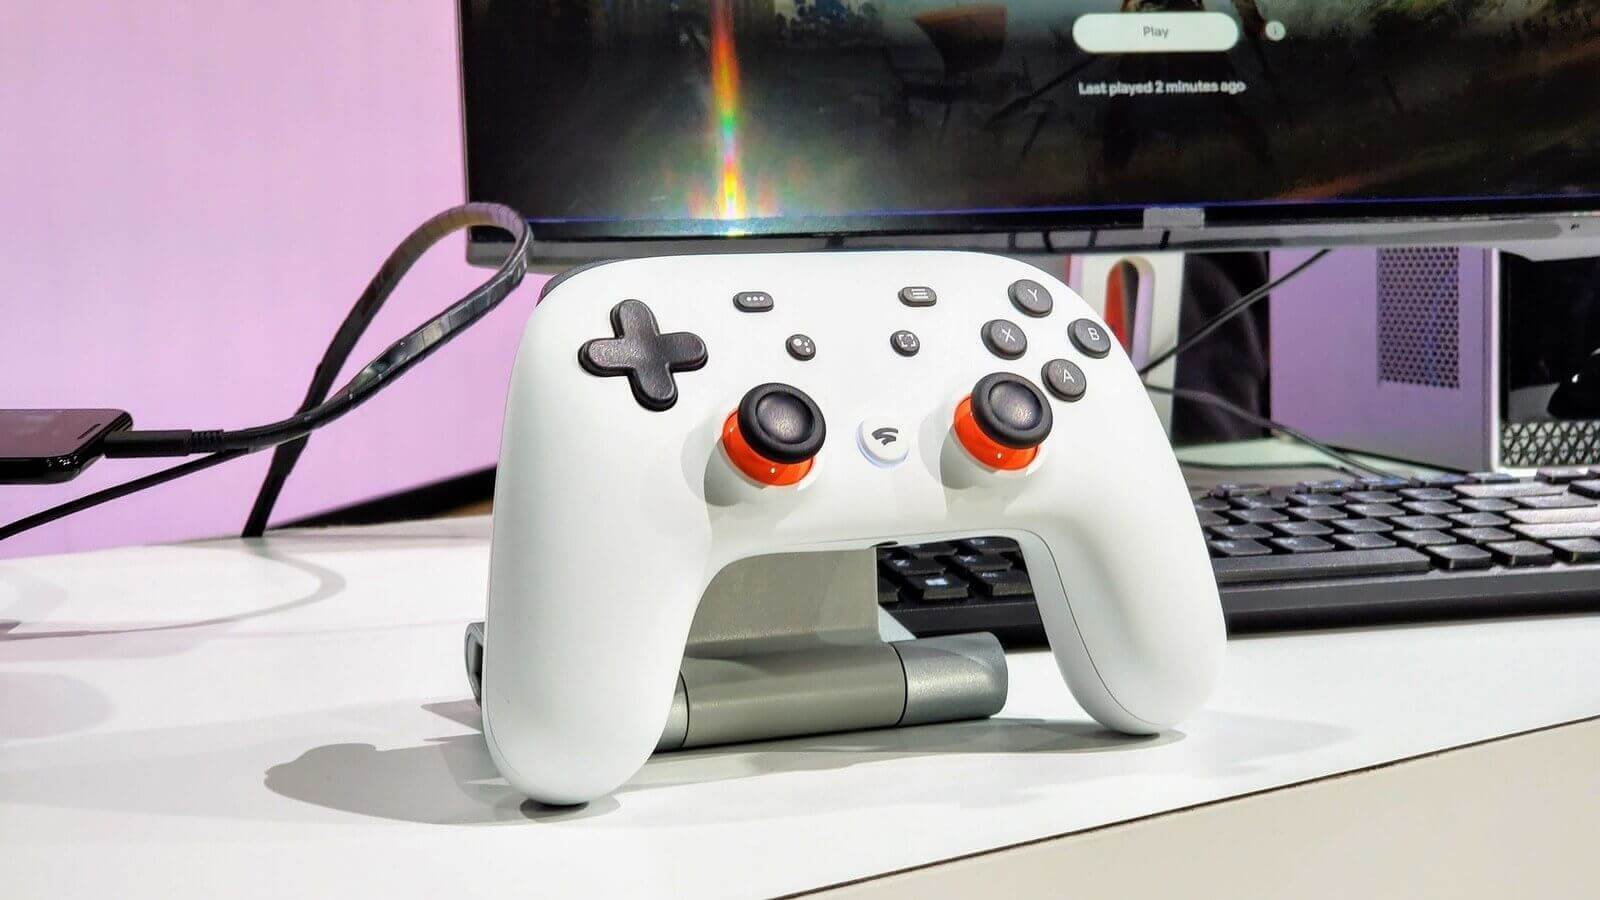 Google thinks ISPs will keep up with data demands of services like Stadia